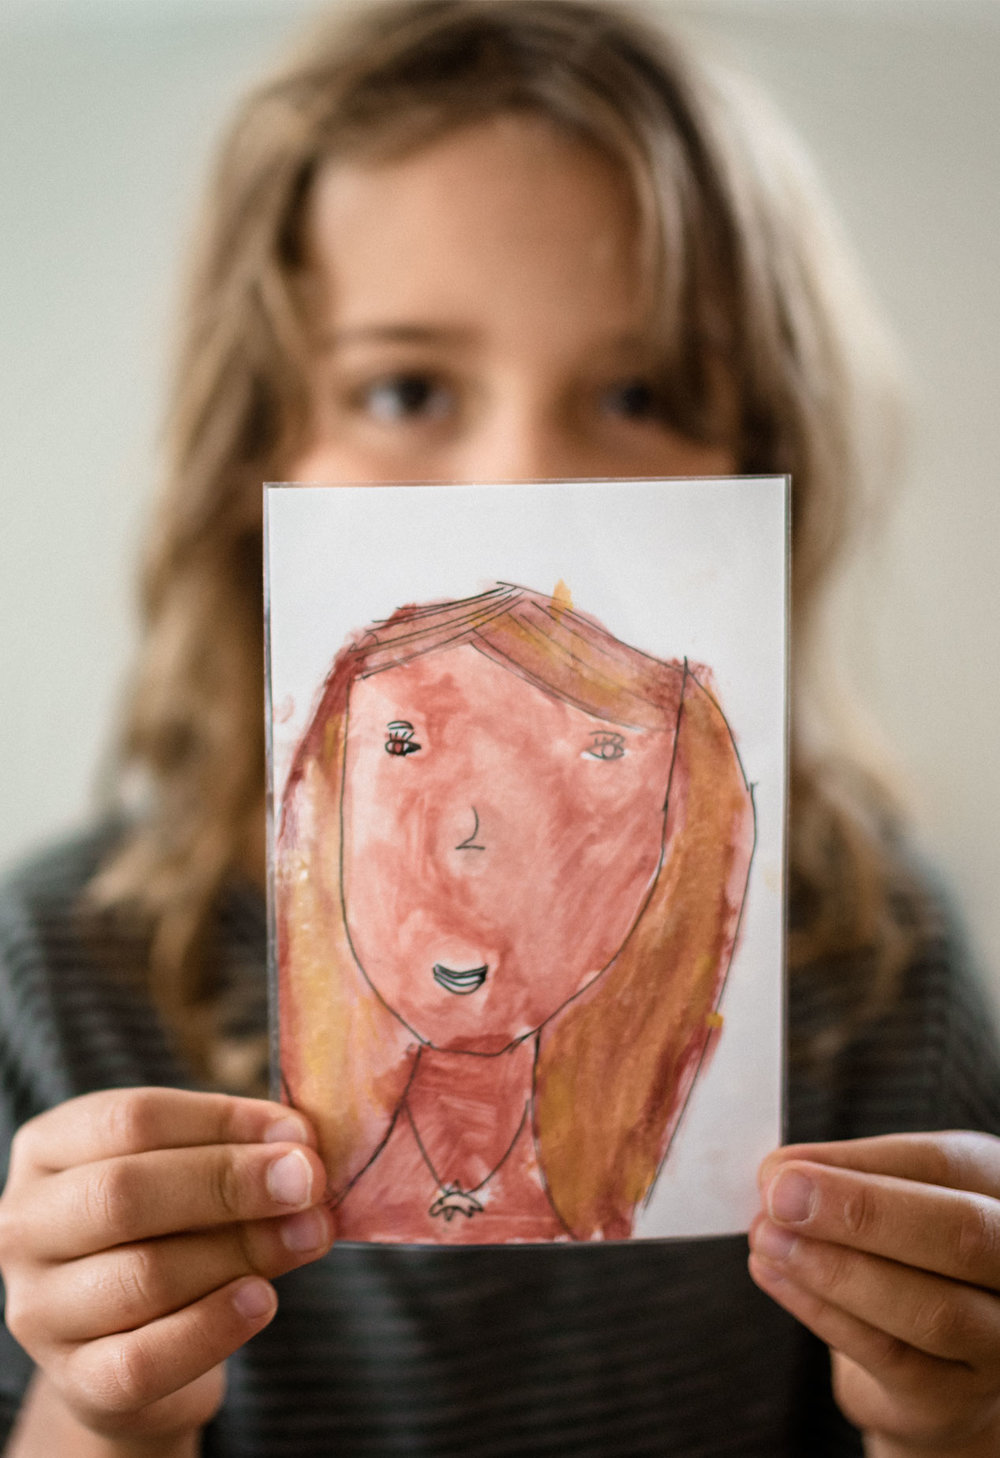 a portrait of a child with a self-portrait she draw by Anita Perminova